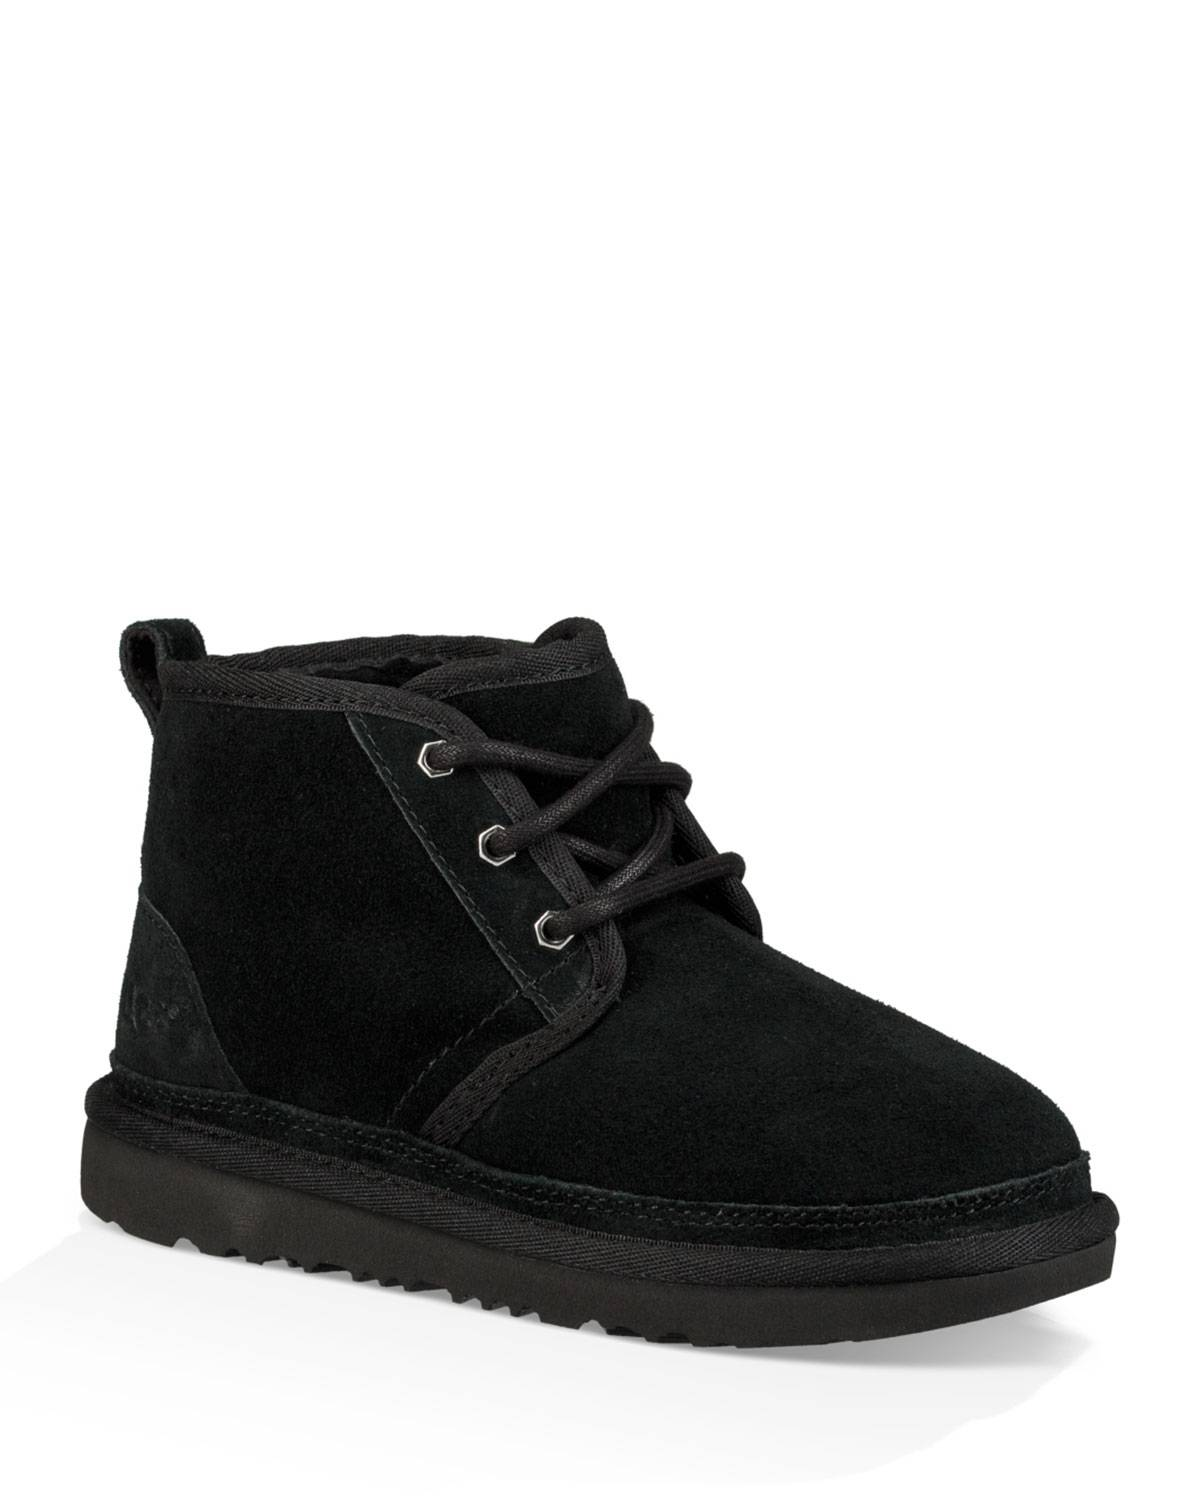 UGG Neumel Suede Lace-Up Boots, Kids